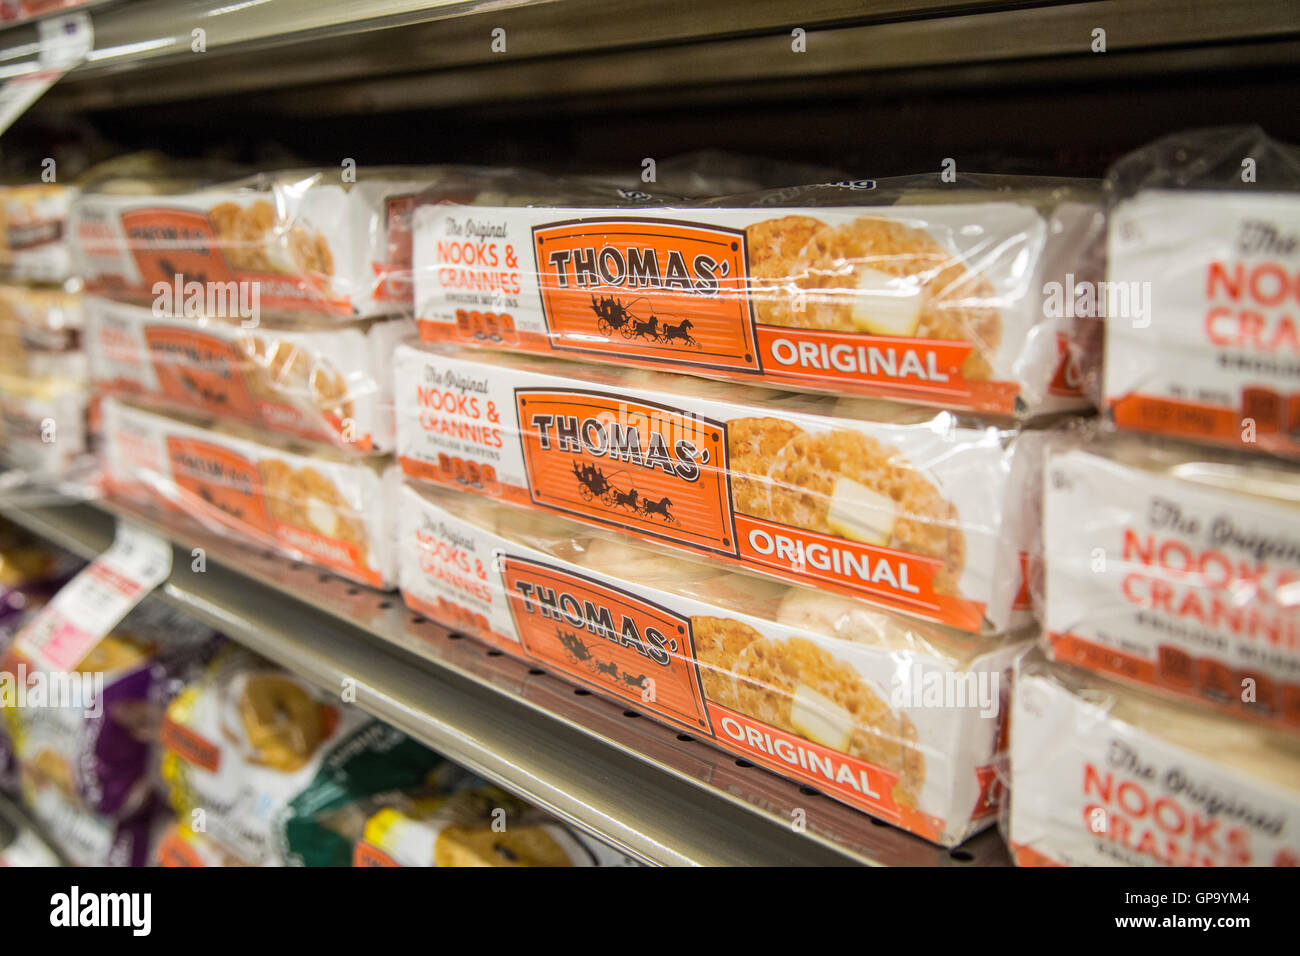 Packages of english muffins on a grocery store shelf - Stock Image